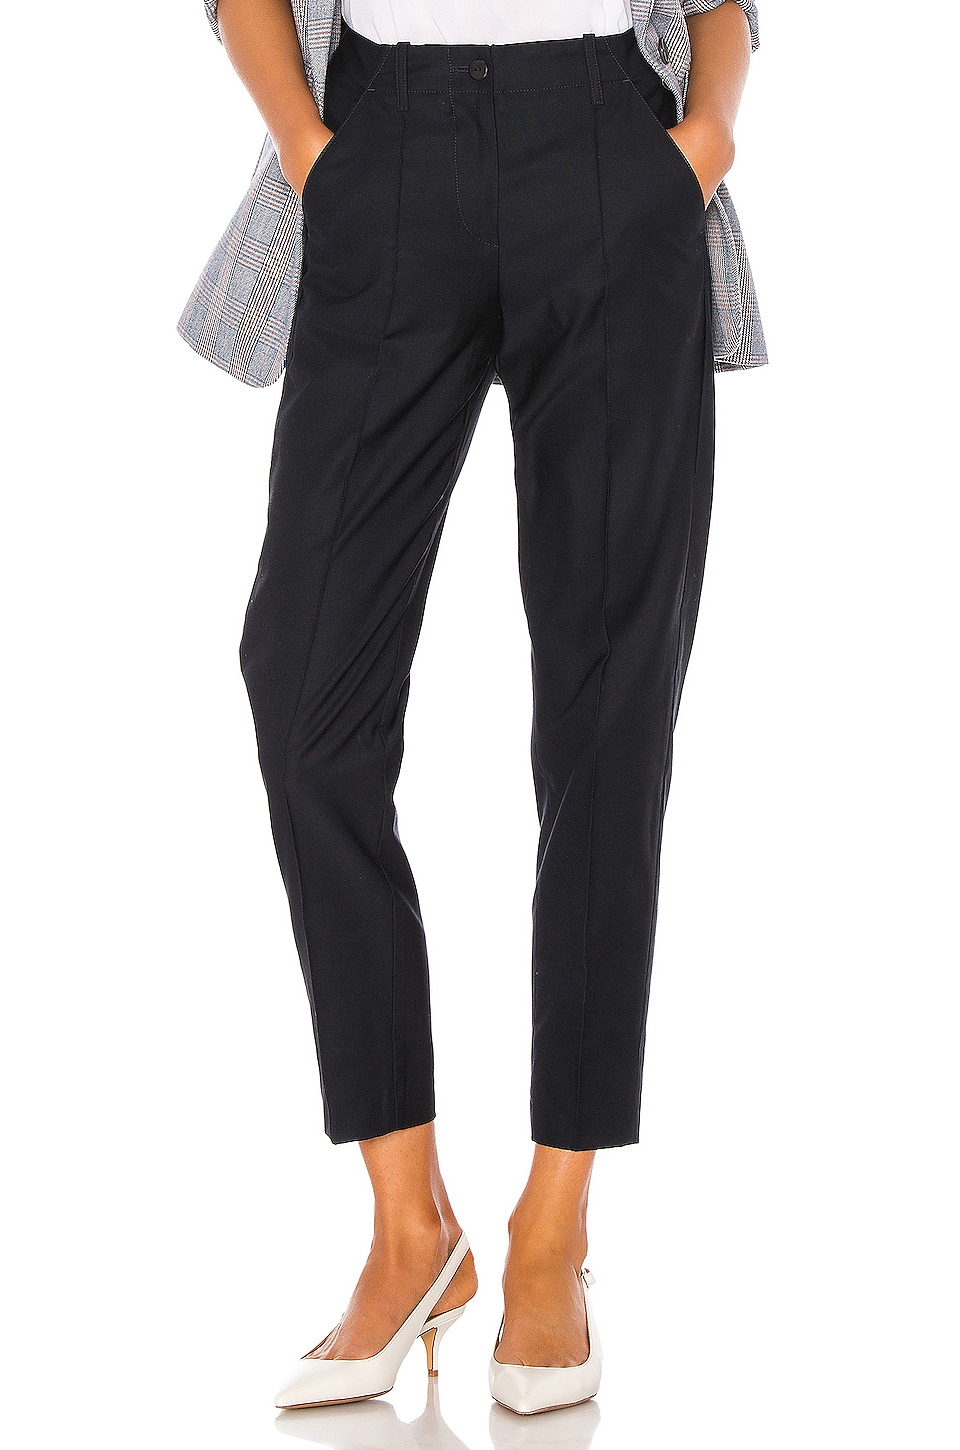 A.P.C. Augusta Pant in Navy